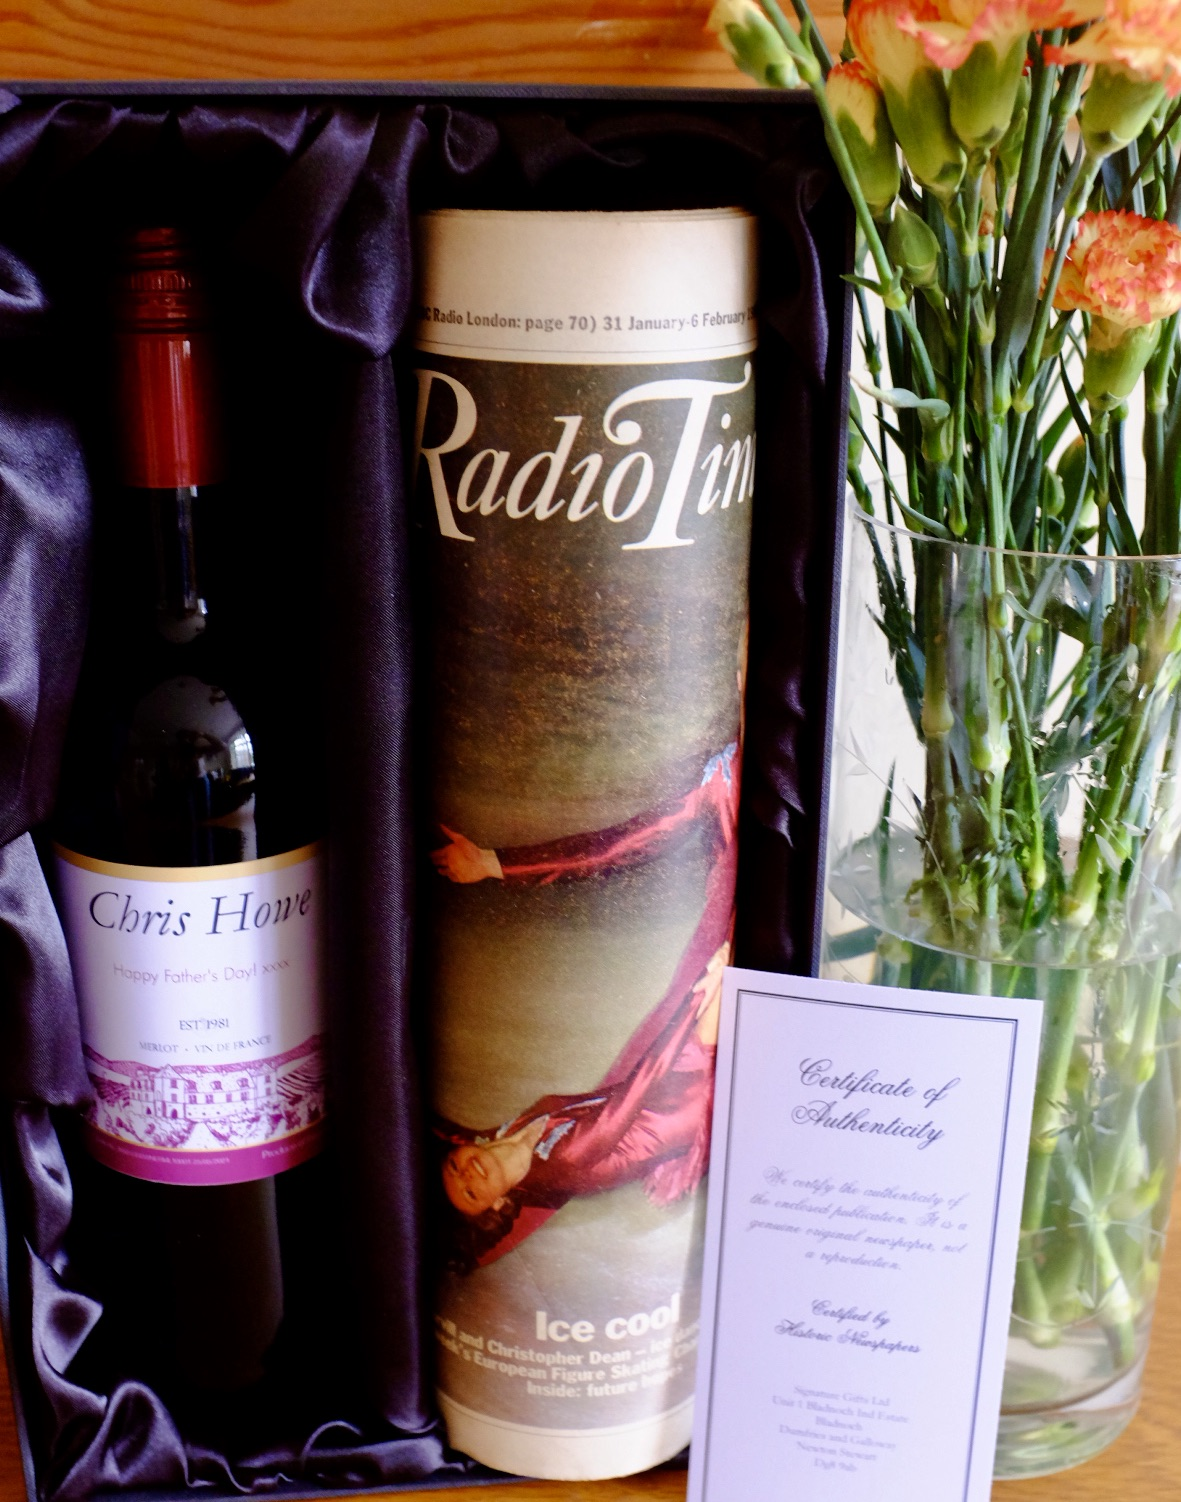 Newspaper gift set - radio times and red wine